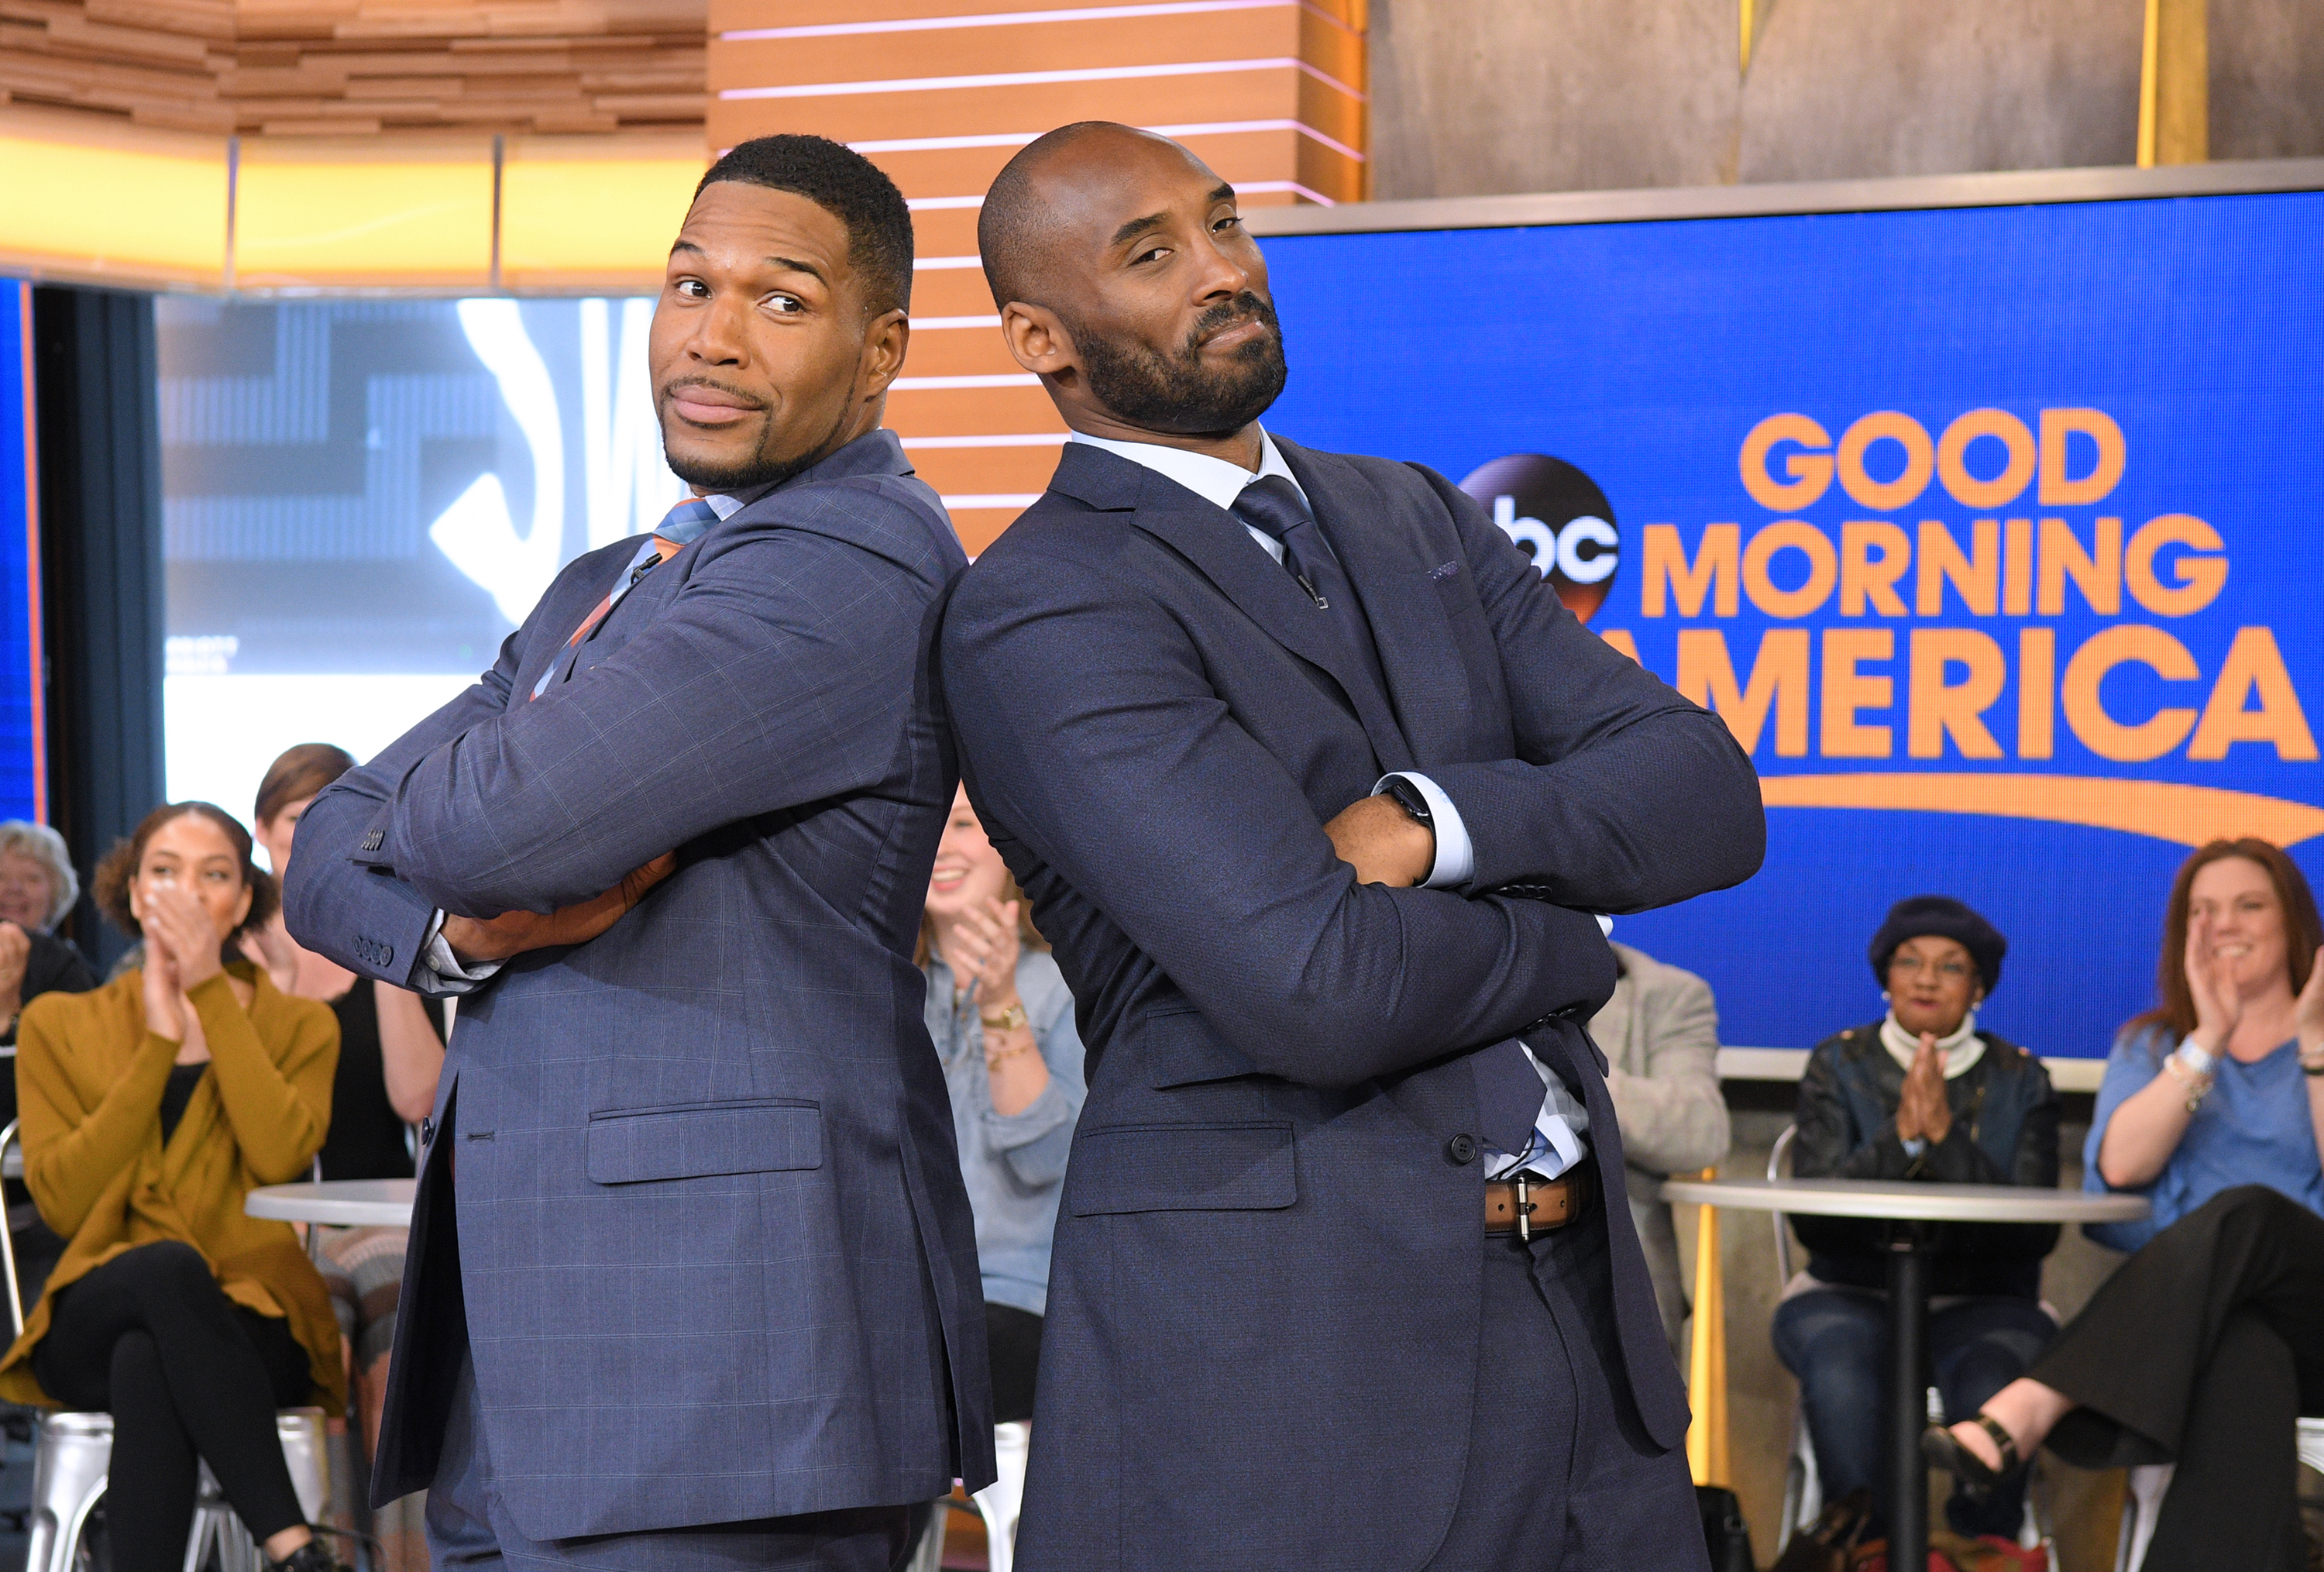 Kobe Bryant and Michael Strahan at an event for Good Morning America (1975)